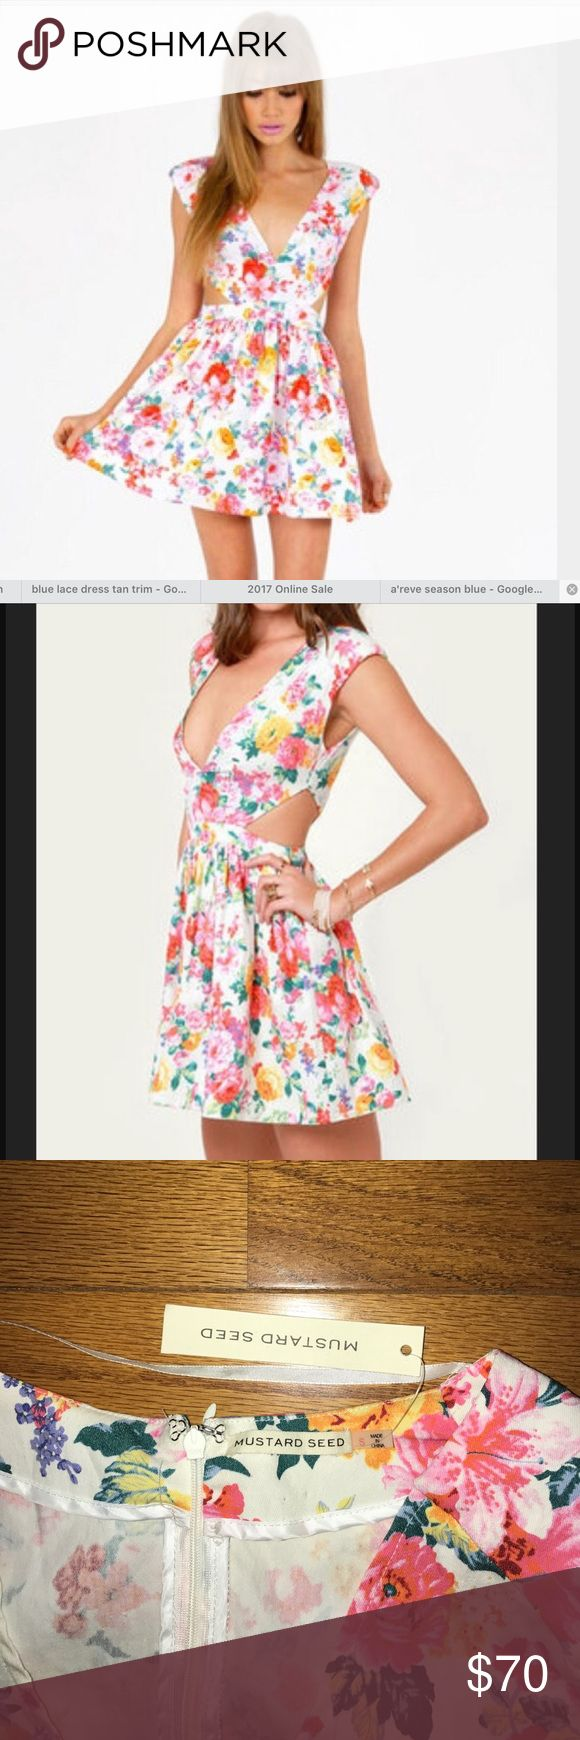 🌸🌸NWT FLORAL CUT-OUT DRESS by MUSTARD SEED🌸🌸 NWT WORN ON VANDERPUMP RULES! Mustard seed floral cut out dress. SOLD OUT!! Padded shoulders lead into a sexy, deep V neckline framed by angular open side cutouts, and a banded waist breaks into a full skirt with layers of tulle underneath. Hidden back zipper/hook clasp. Skirt is lined. Model is wearing a size small. Shell: 60% Cotton, 40% Polyester. Polyester lining. Hand Wash Cold. Imported. Waist 13 inches flat, length 30 inches flat, bust…